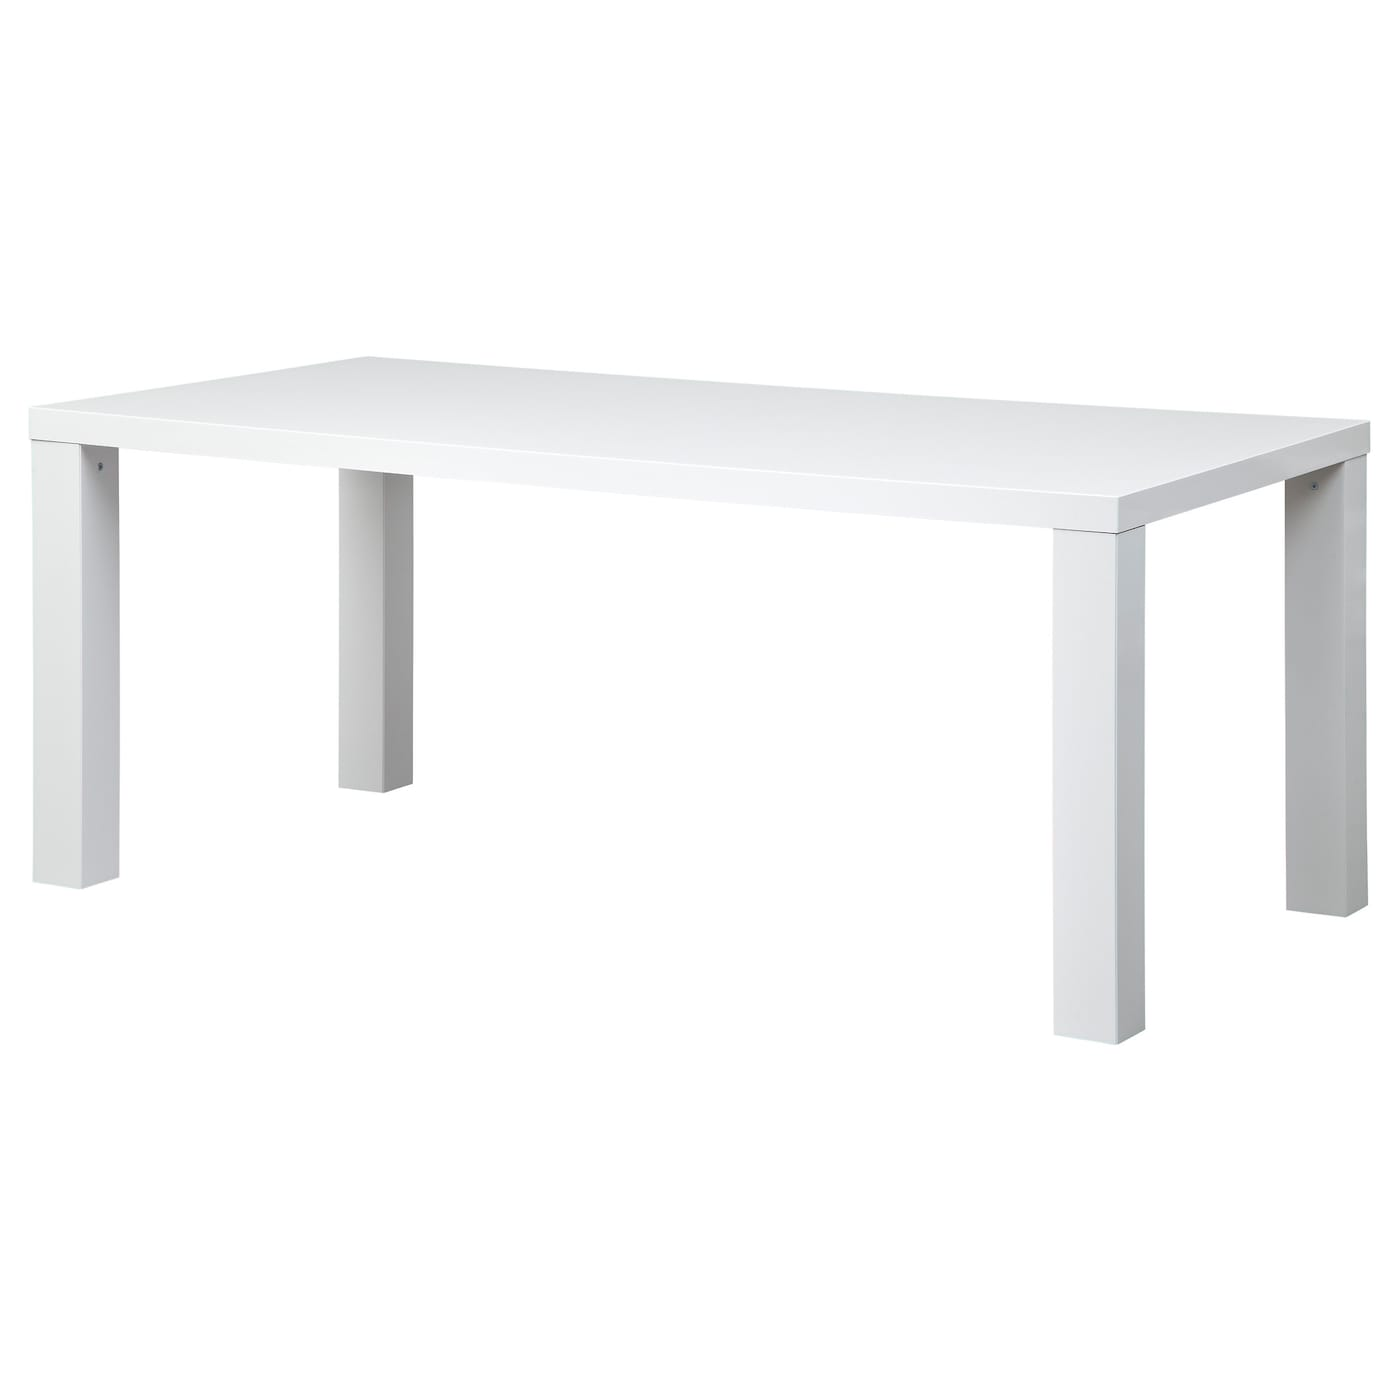 toresund table blanc brillant 180x90 cm ikea. Black Bedroom Furniture Sets. Home Design Ideas